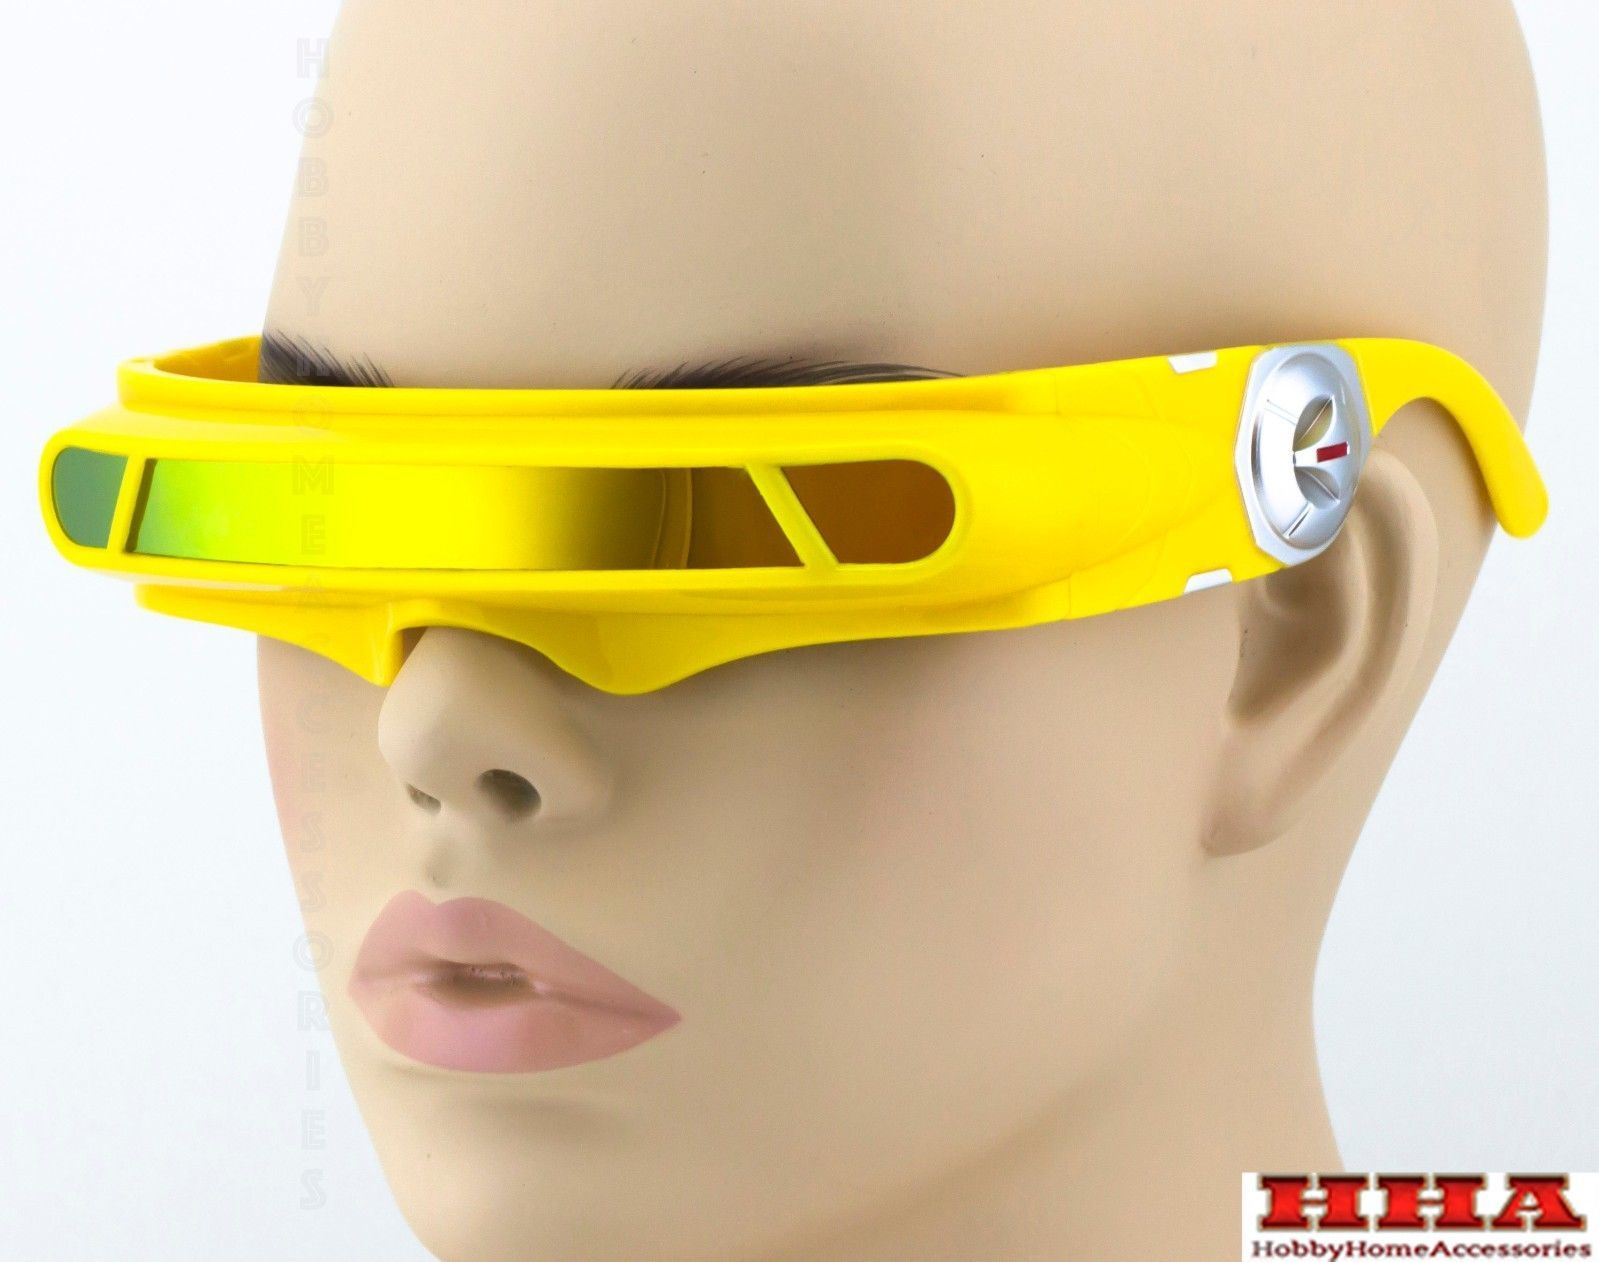 Used, SPACE ALIEN COSTUME Party CYCLOPS Futuristic Robot WRAP SHIELD SUN GLASSES Visor for sale  USA